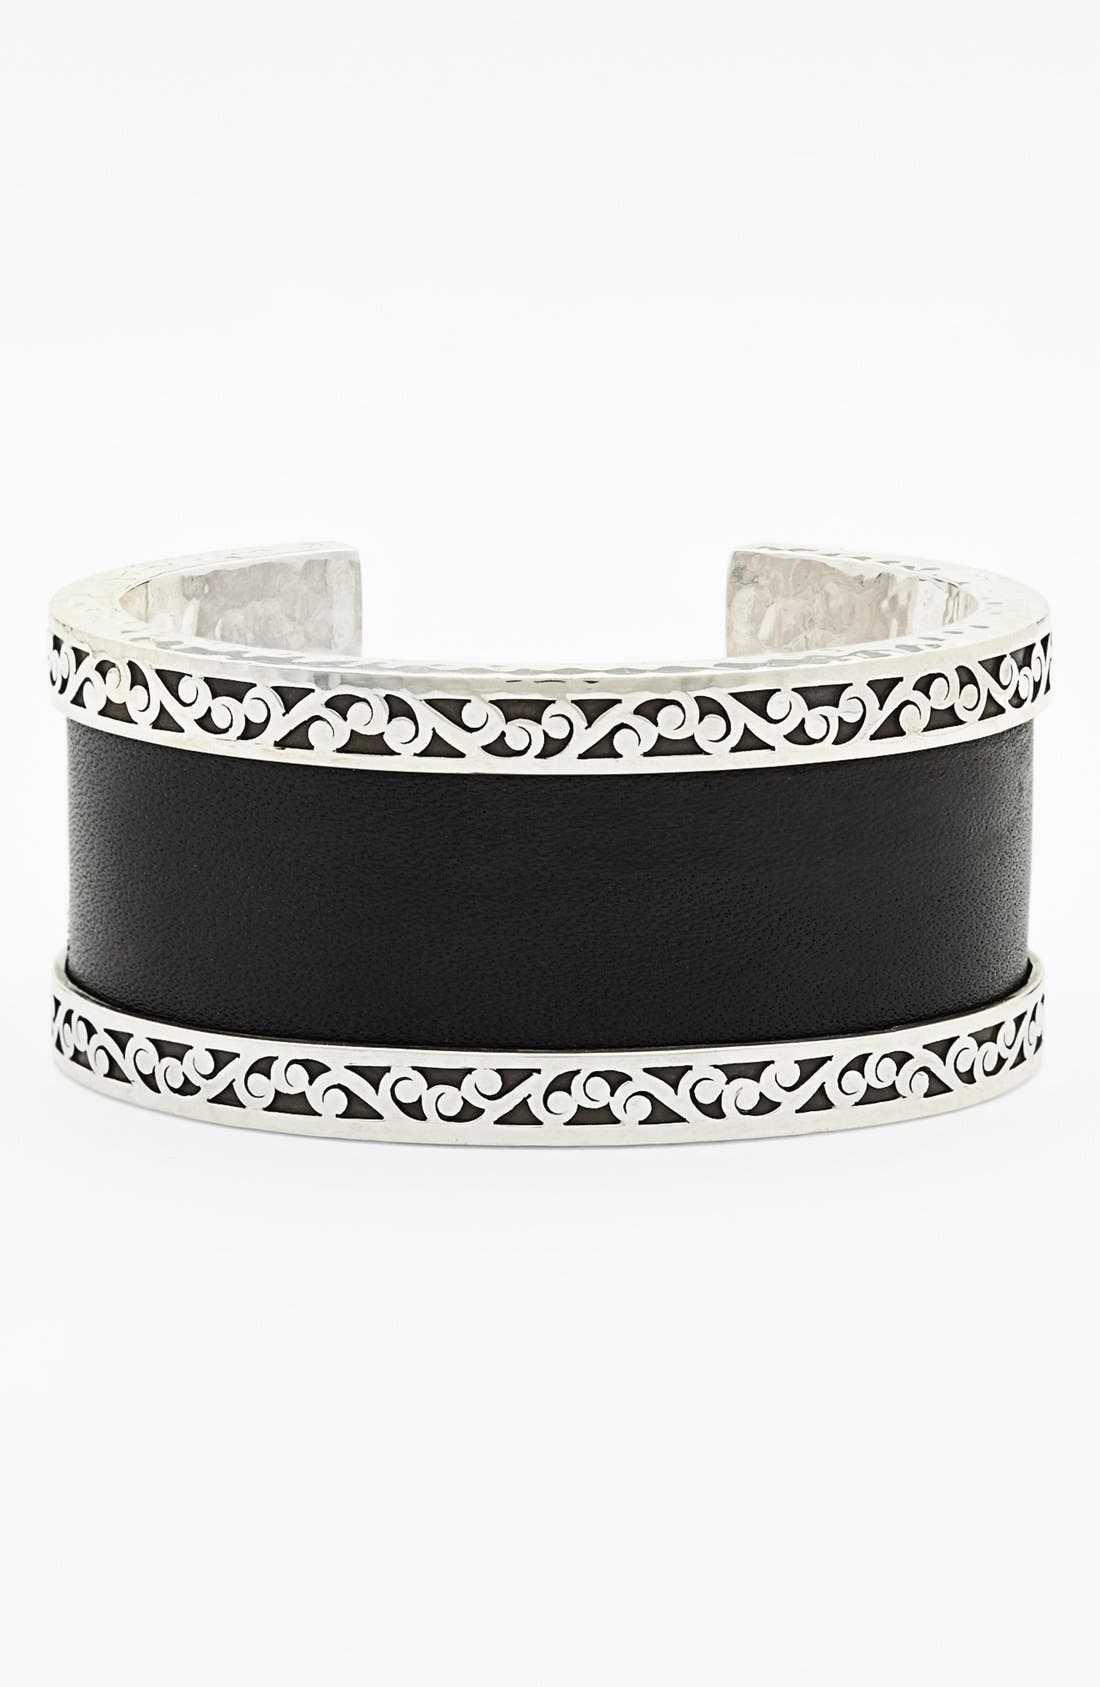 Alternate Image 1 Selected - Lois Hill Medium Leather & Sterling Silver Cuff